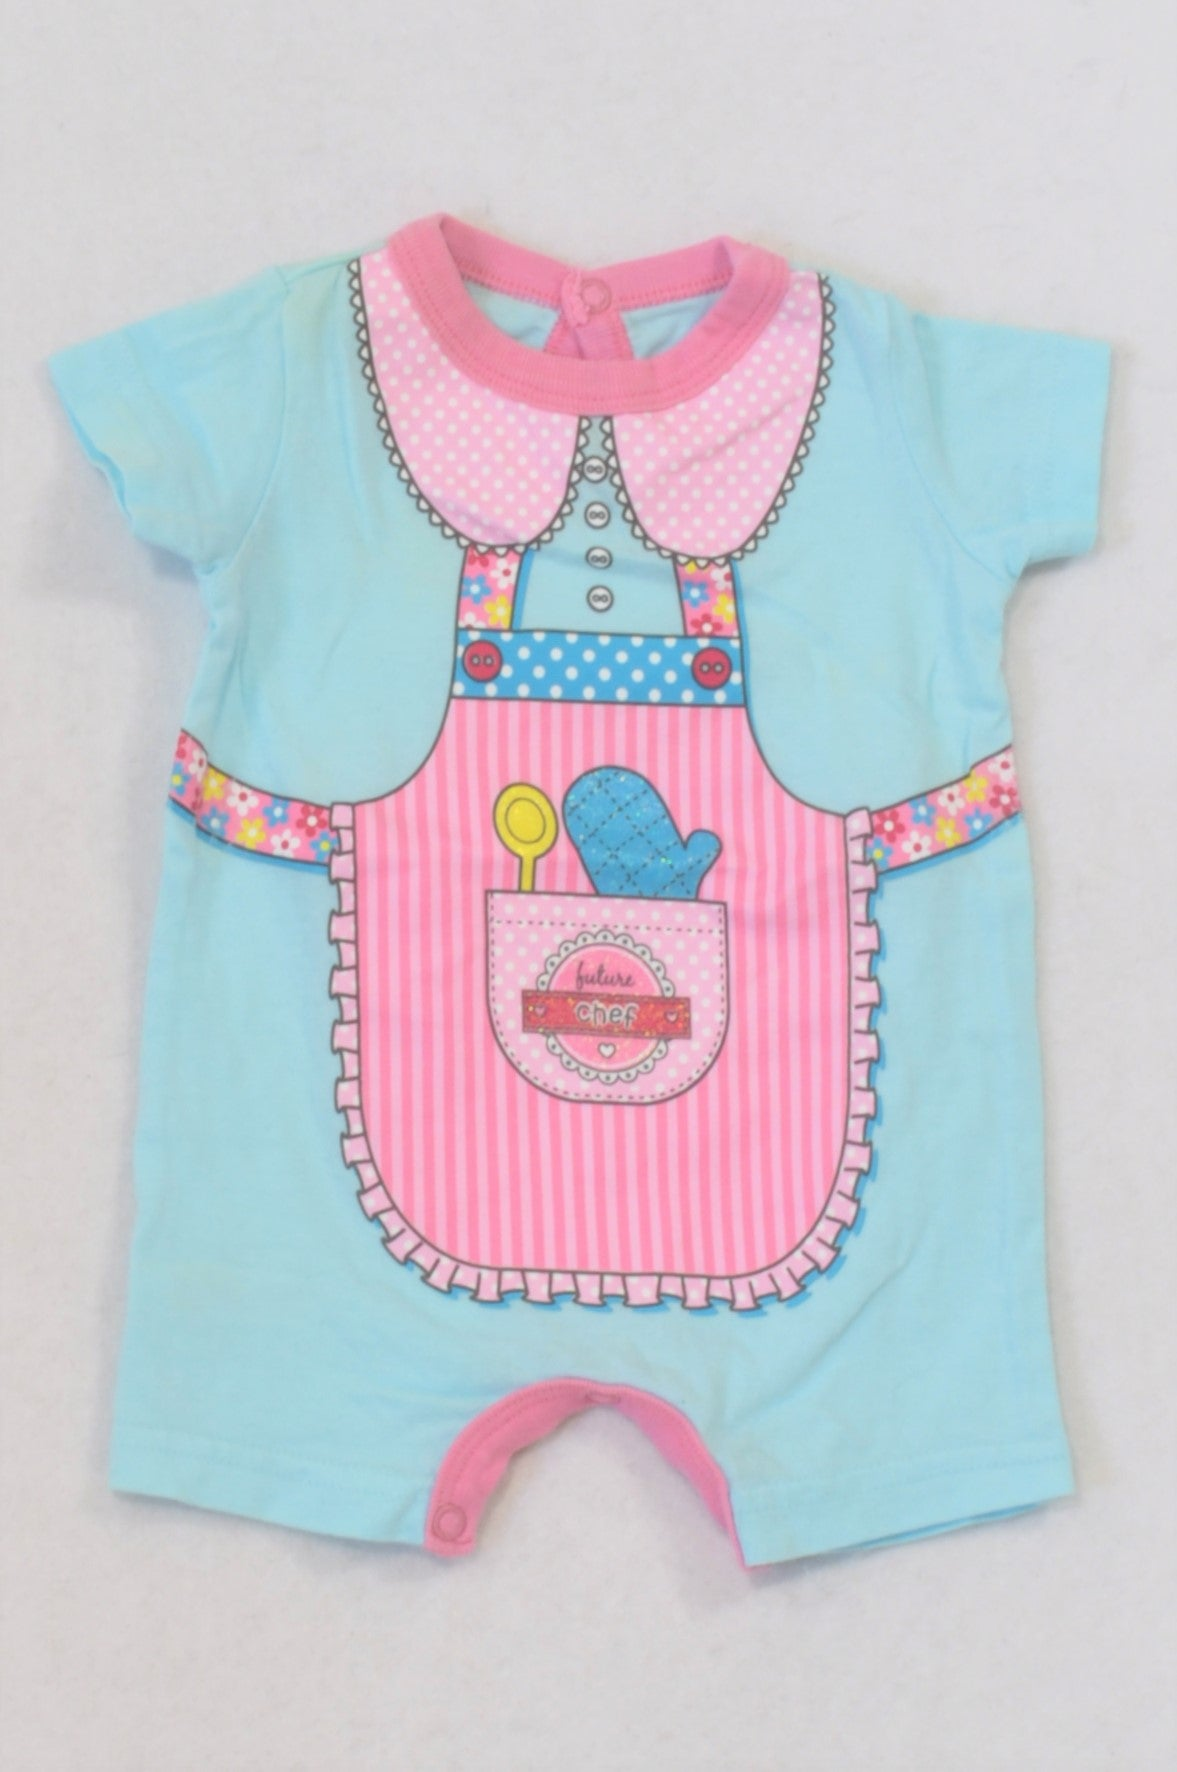 Woolworths Aqua Future Chef Romper Girls N-B